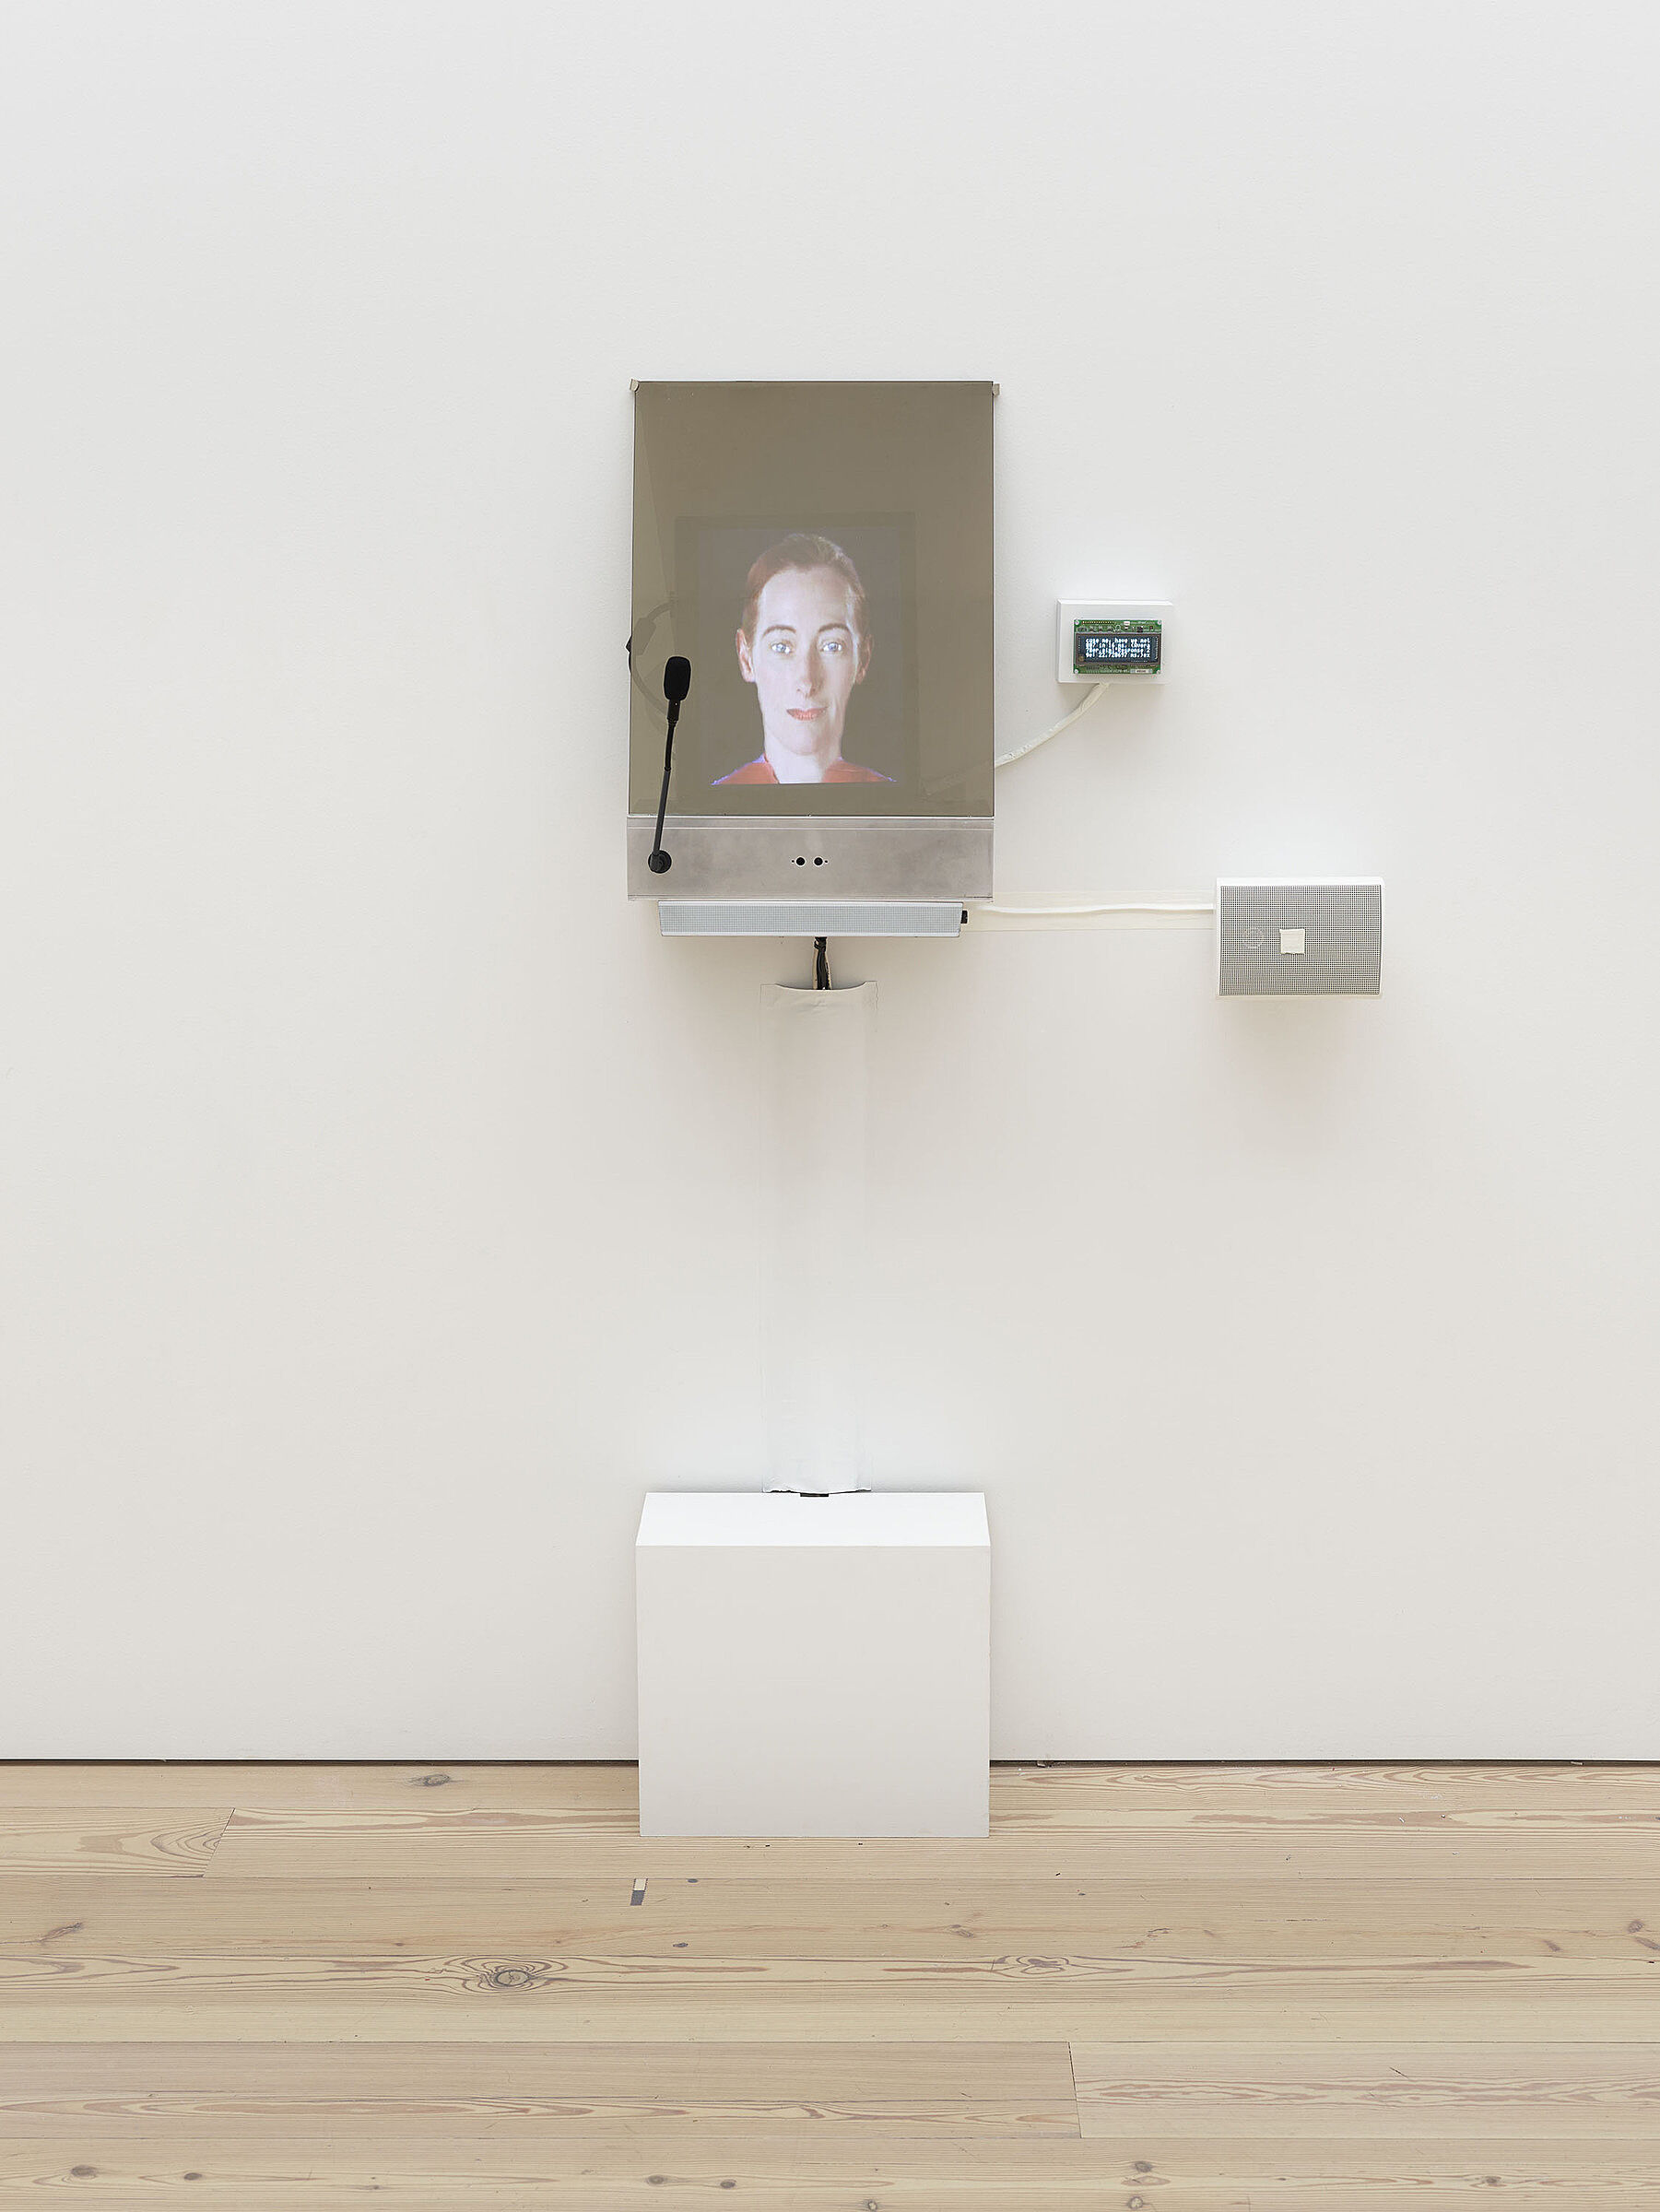 A small video screen on a gallery wall projecting a person's face.